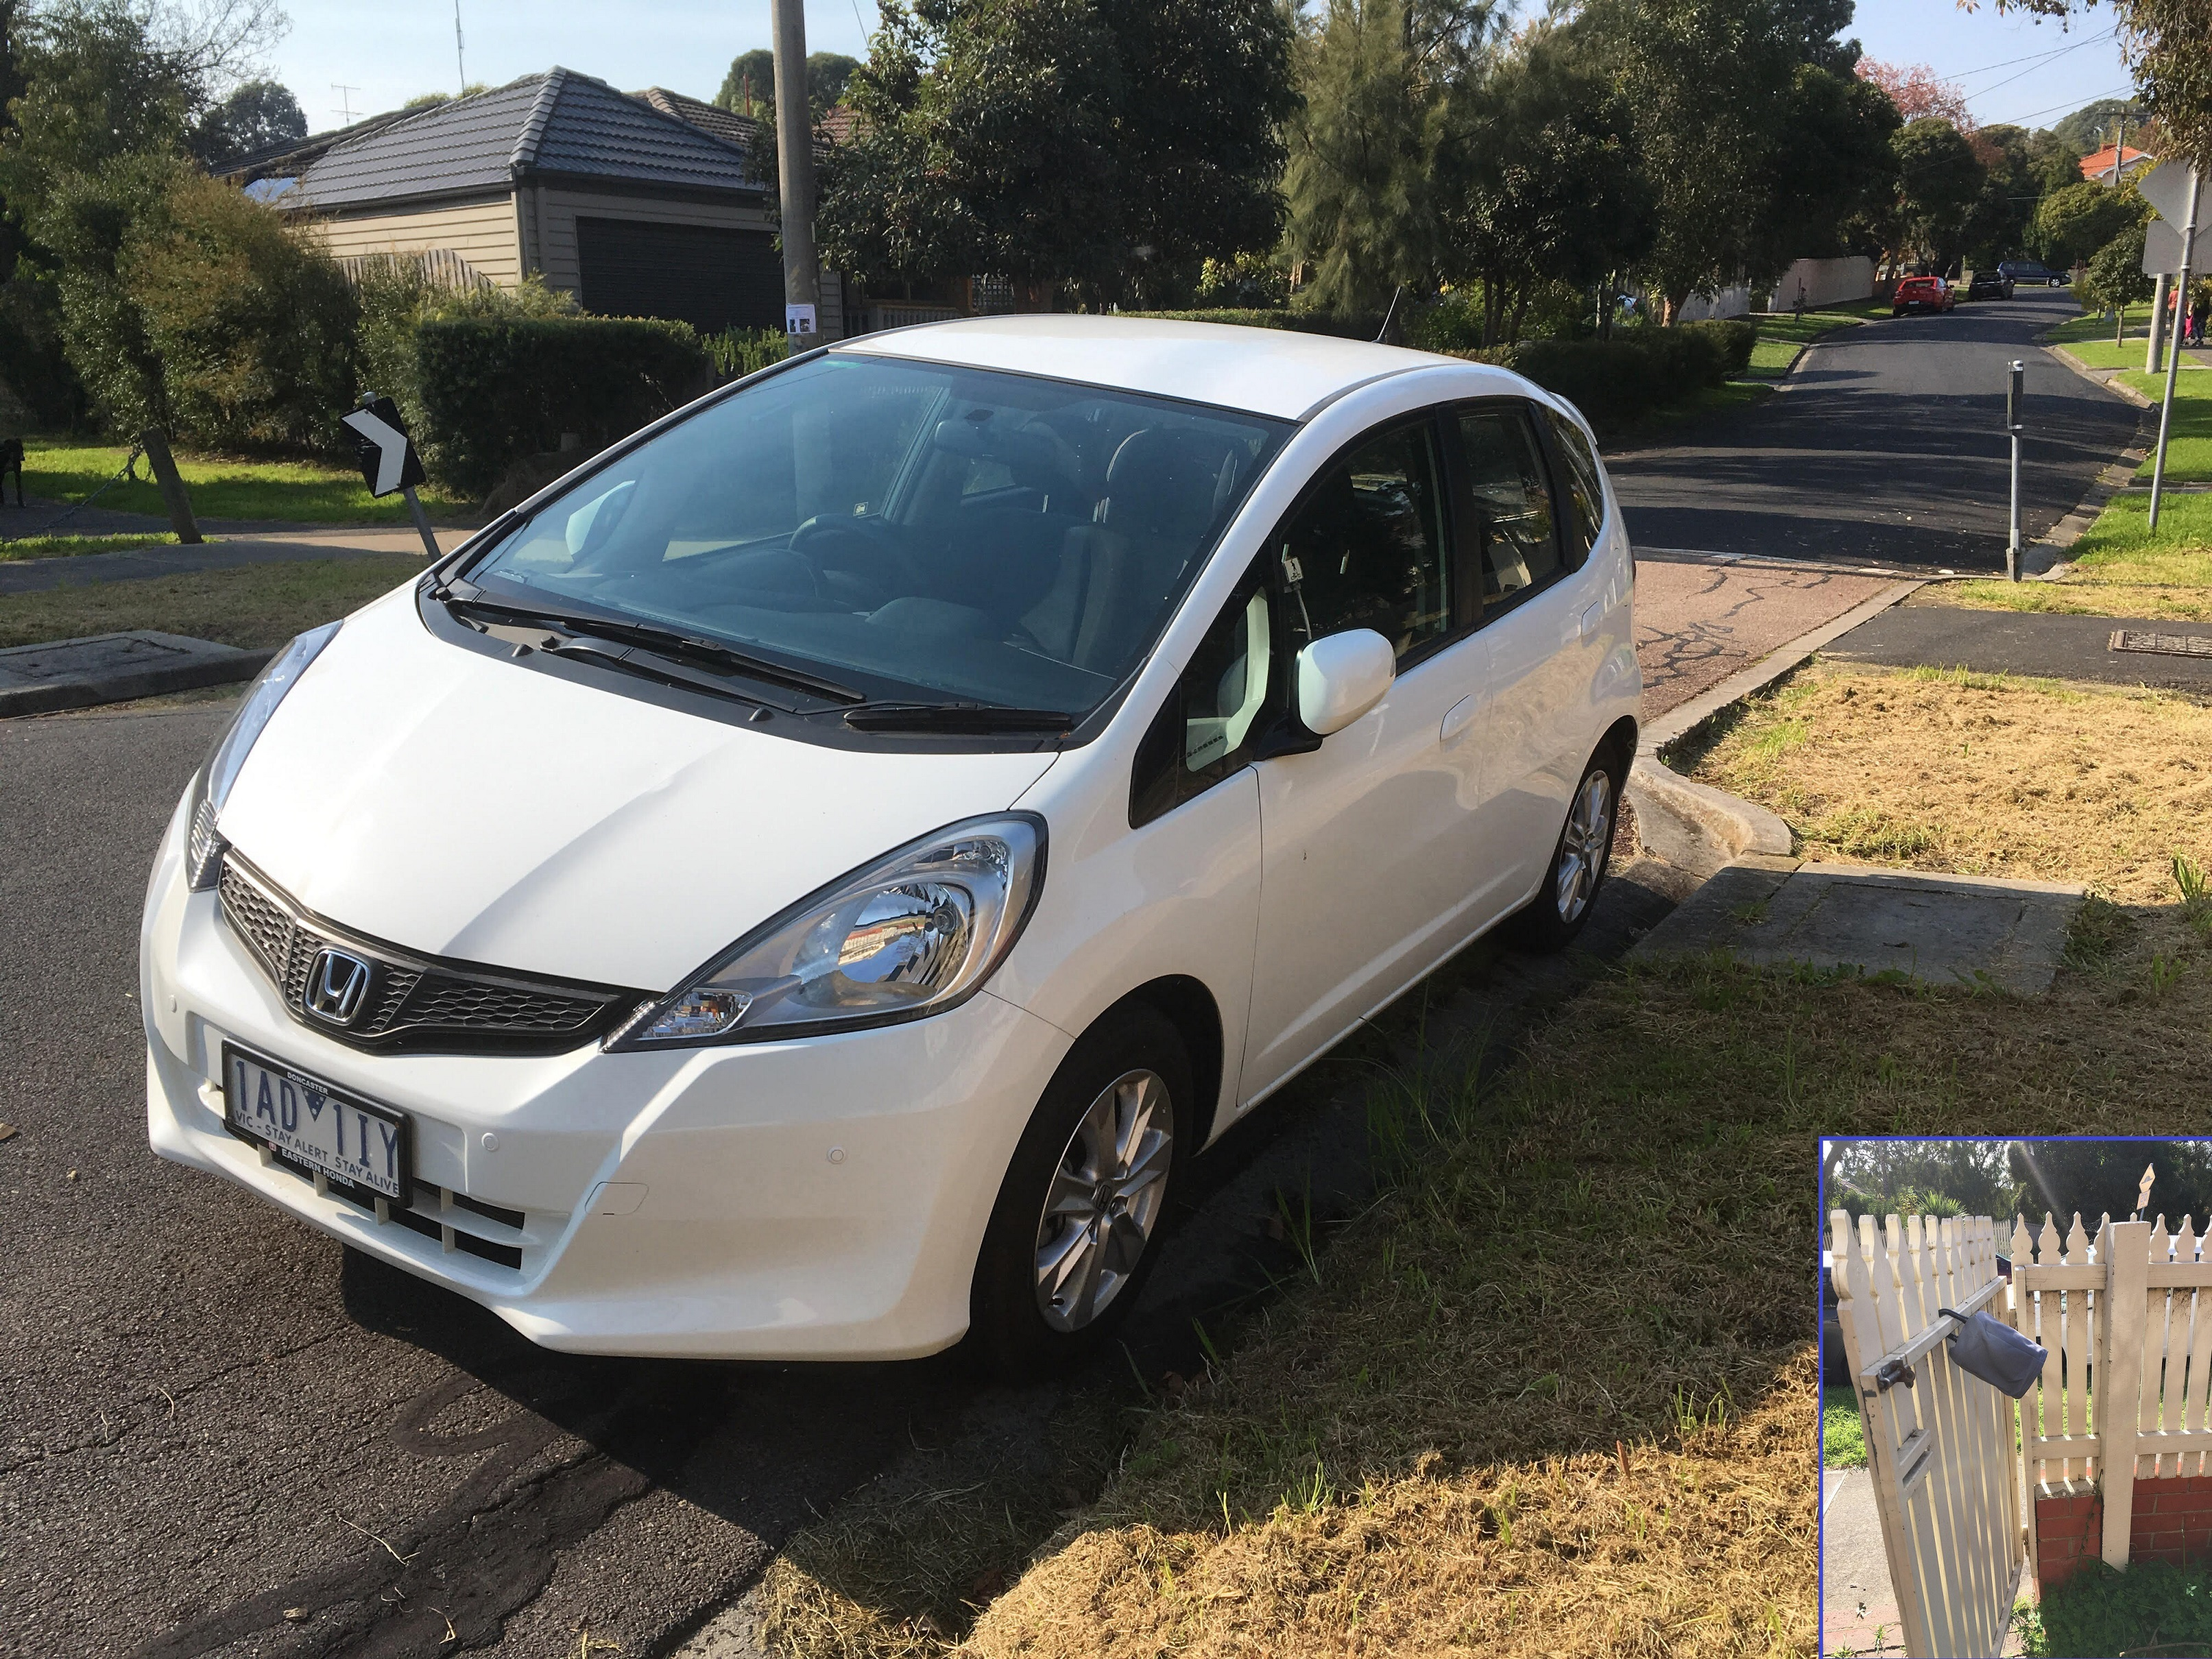 Picture of Evah's 2012 Honda Jazz